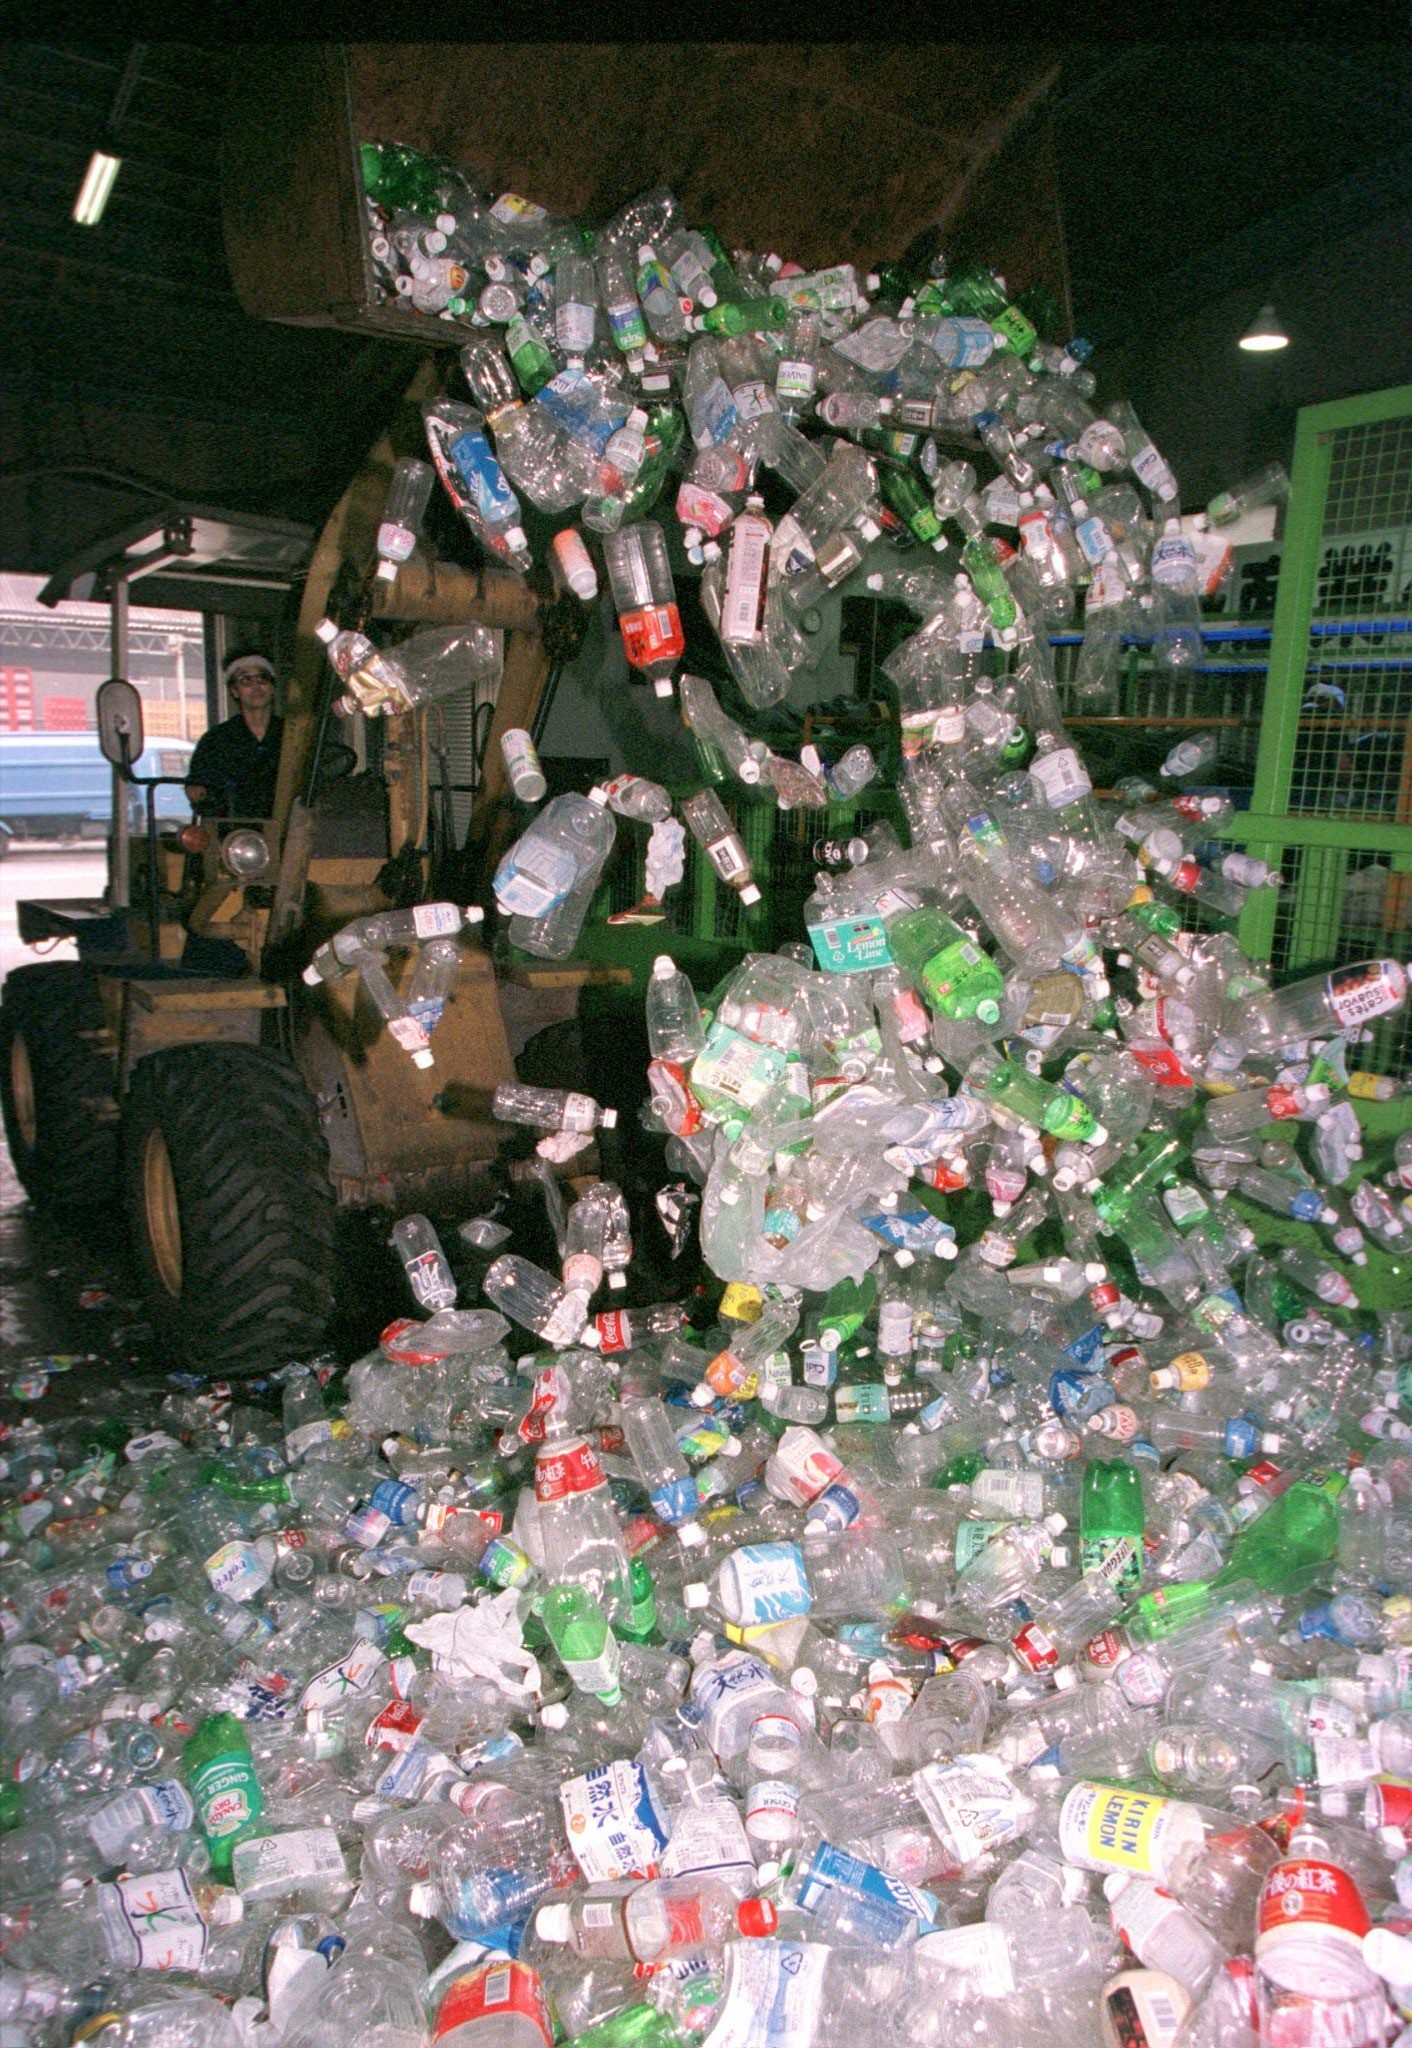 A bulldozer scrapes up piles of empty plastic bottles at a recycling plant in Tokyo August 19. Worries about the safety of tap water are boosting sales of bottled water and tea in Japan, leaving piles of empty plastic bottles behind in a country that is already running out of garbage dumps. Industry officials estimate consumption of small-sized PET (polyethylene terephthalate) bottles will reach 3.5 billion to four billion units this year, nearly the double the 2.2 billion used last year and compared with a more 640 million in 1996. Picture taken 19AUG98.ST/CC - RTRGJ8A